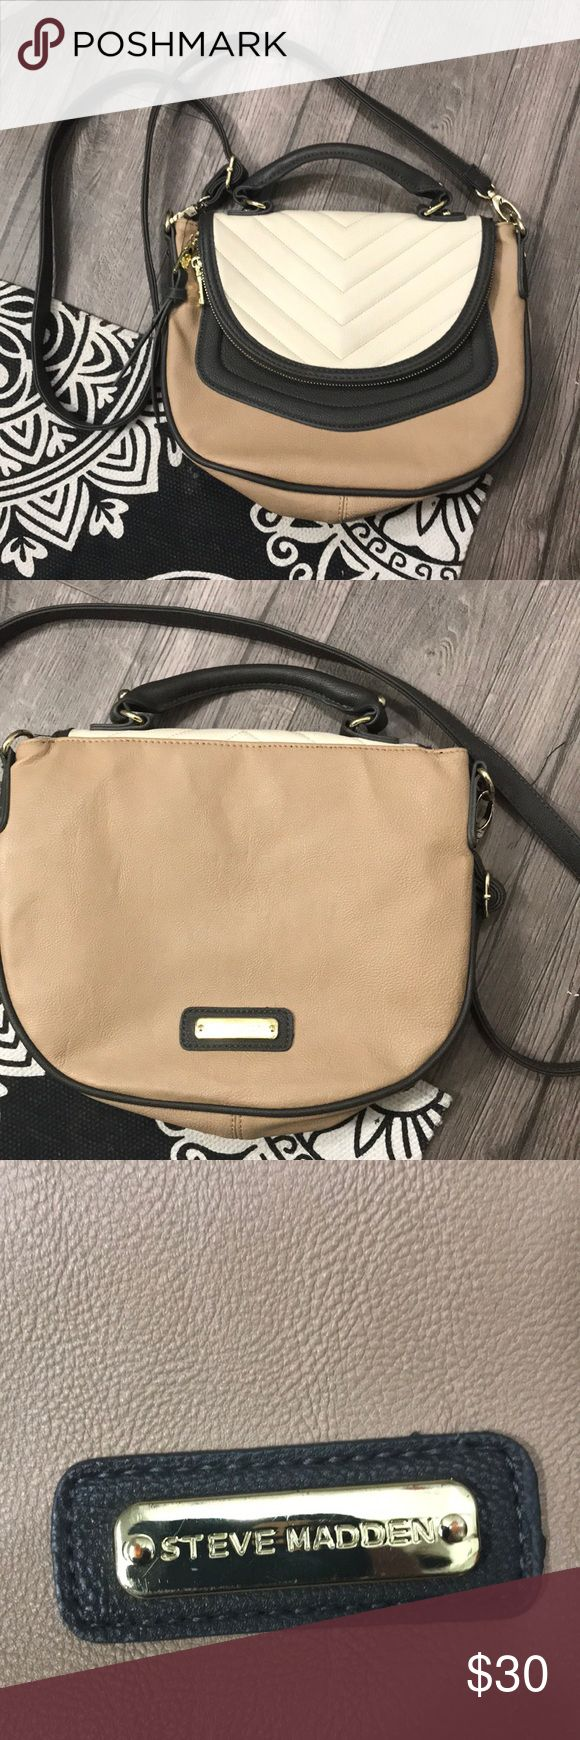 Steve Madden Purse Steve Madden Purse! Beige and gray! In great shape! Steve Madden Bags